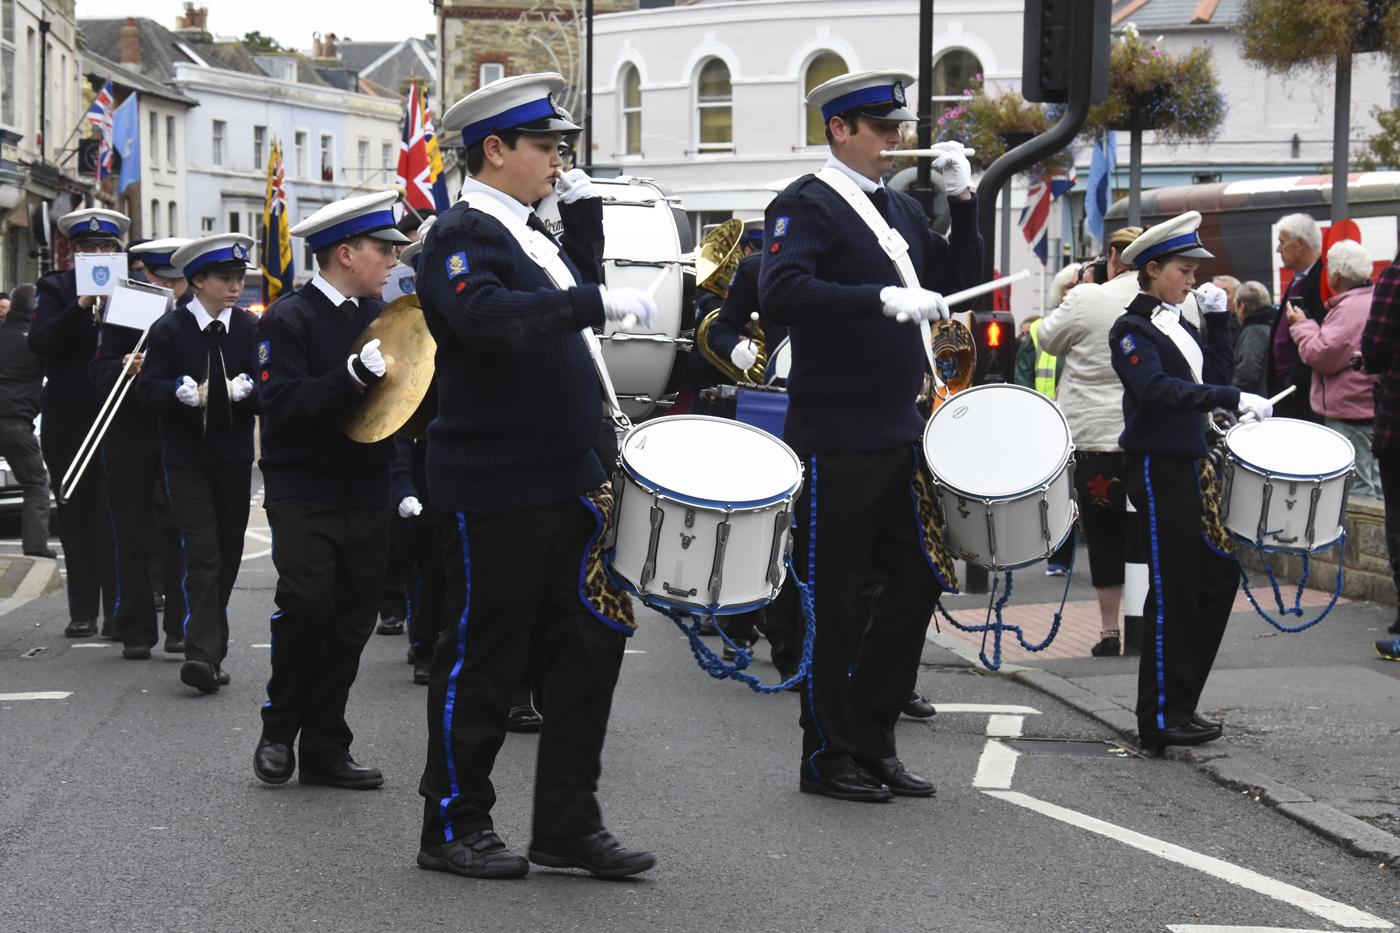 20161029_stp_3494-hss-launch-of-the-poppy-appeal-2016-in-ventnor